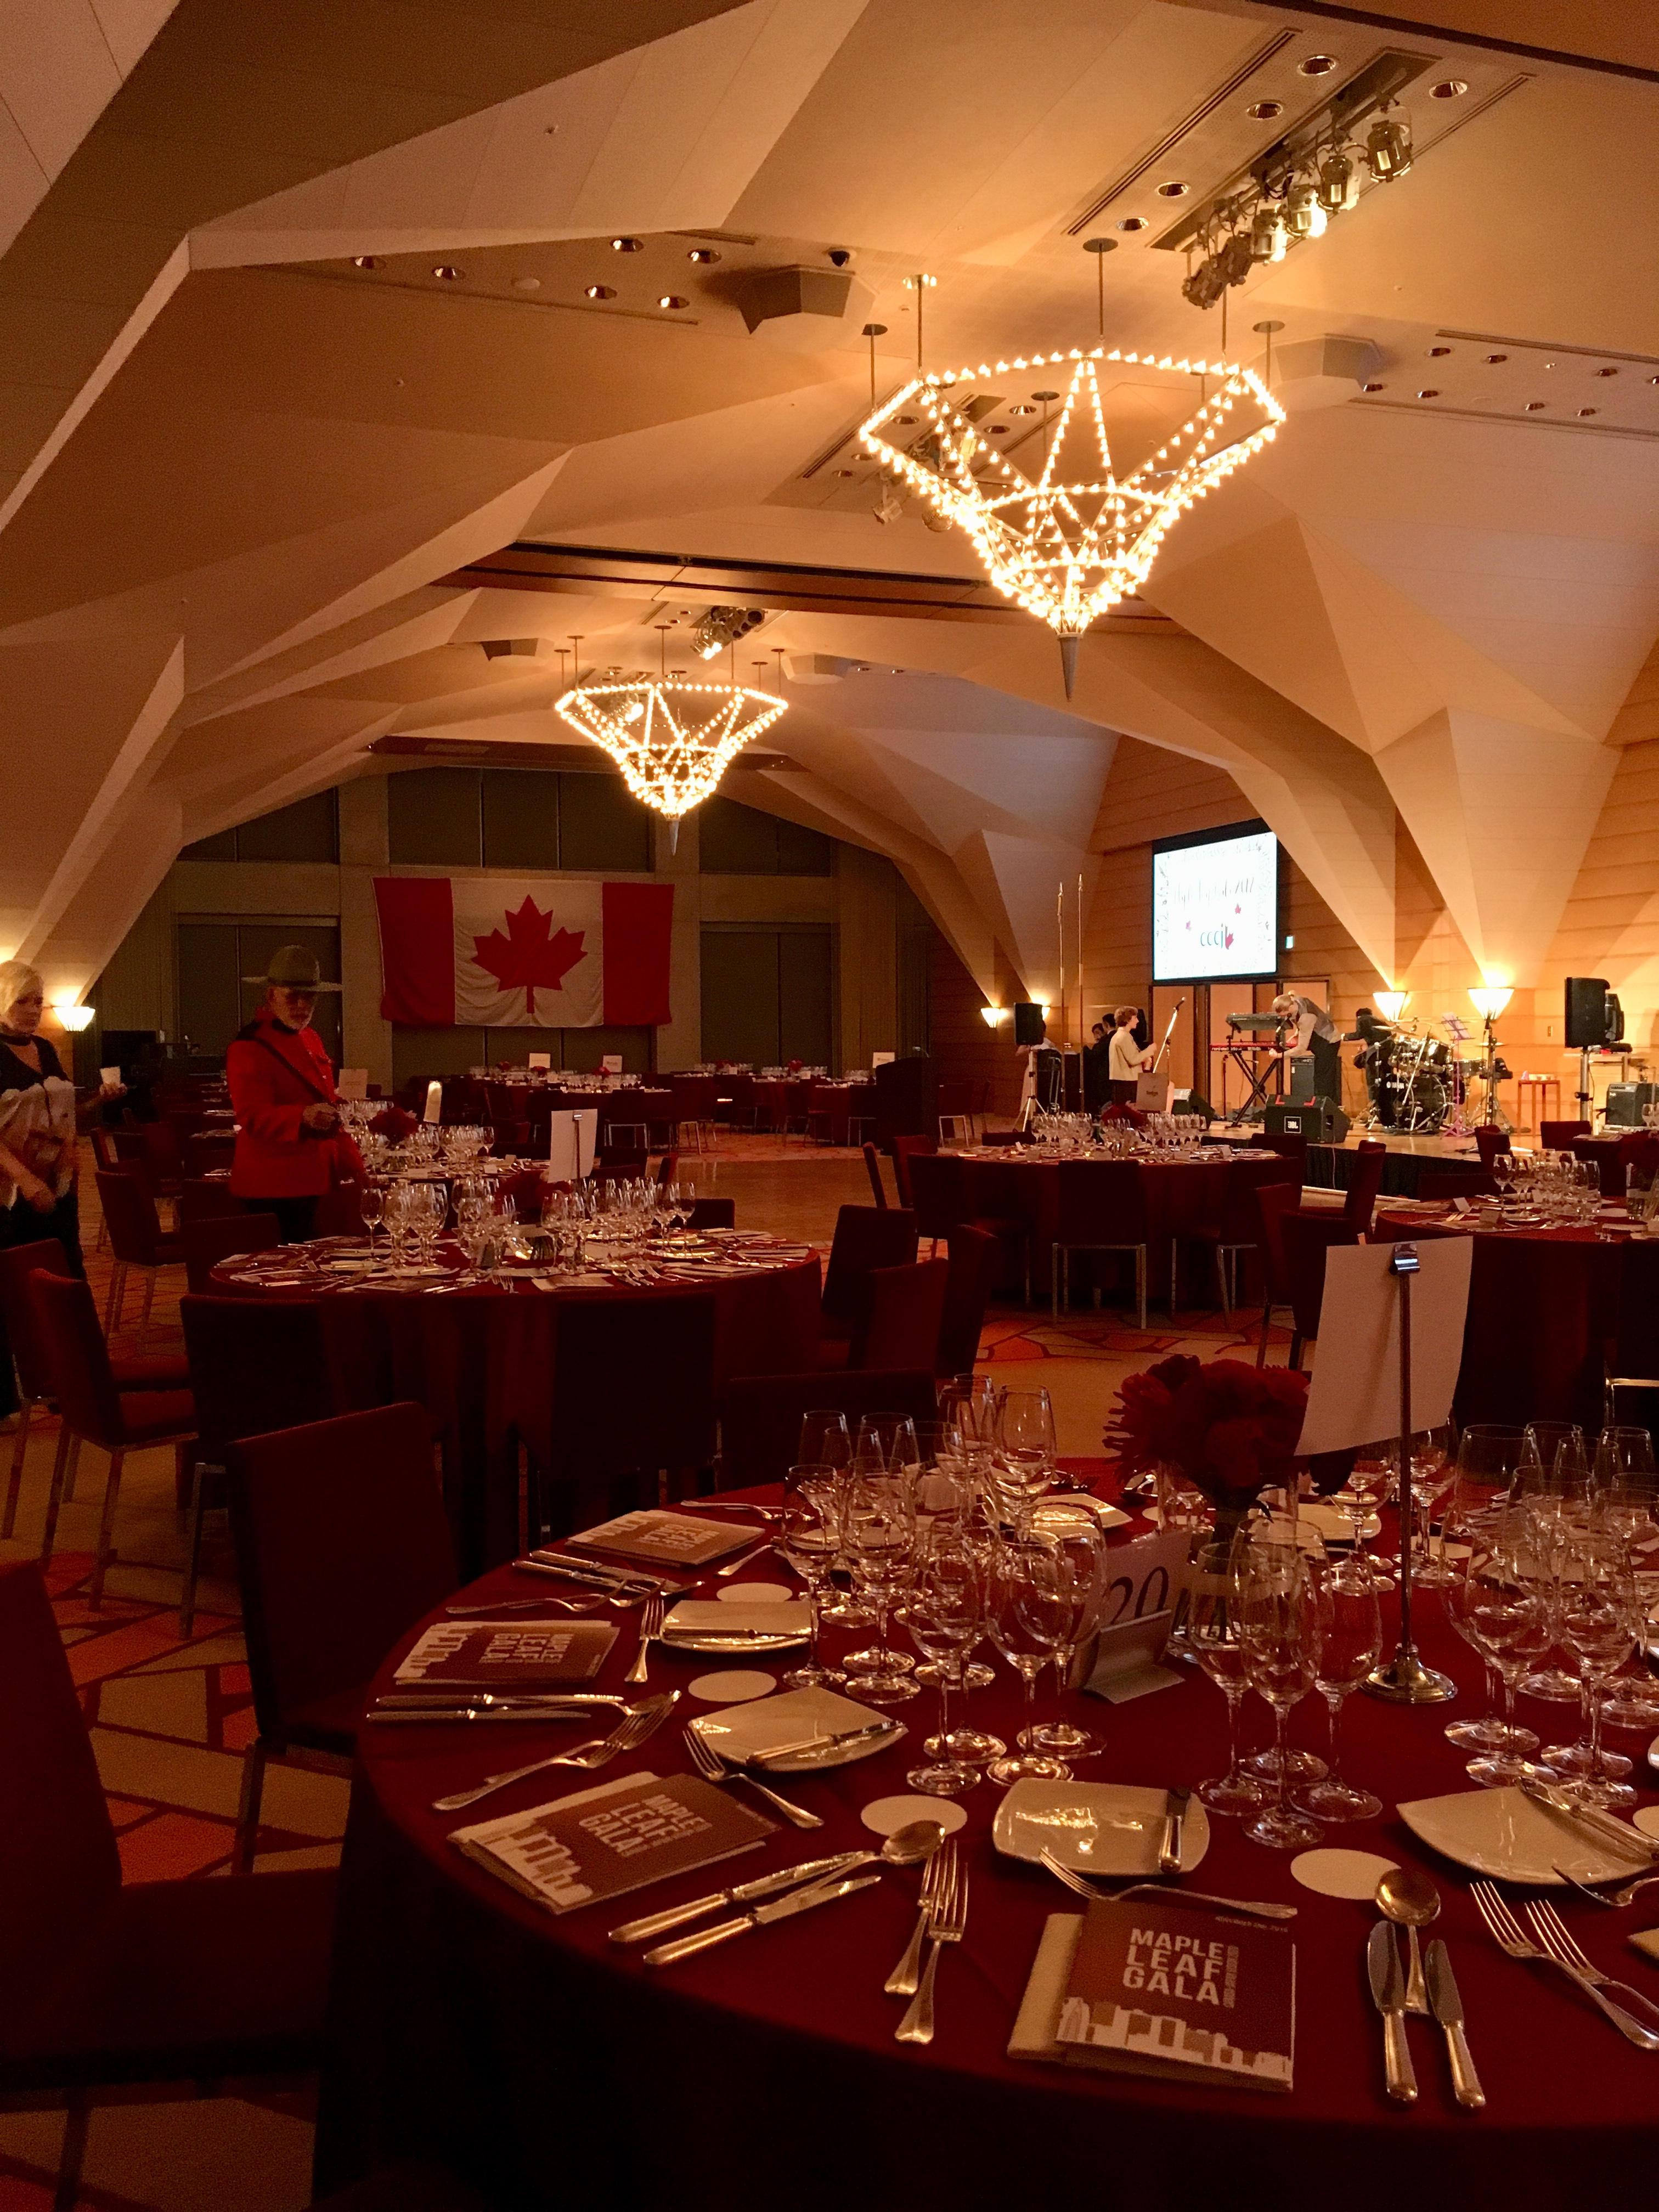 A large dining room with table settings and a Canadian flag in the background.